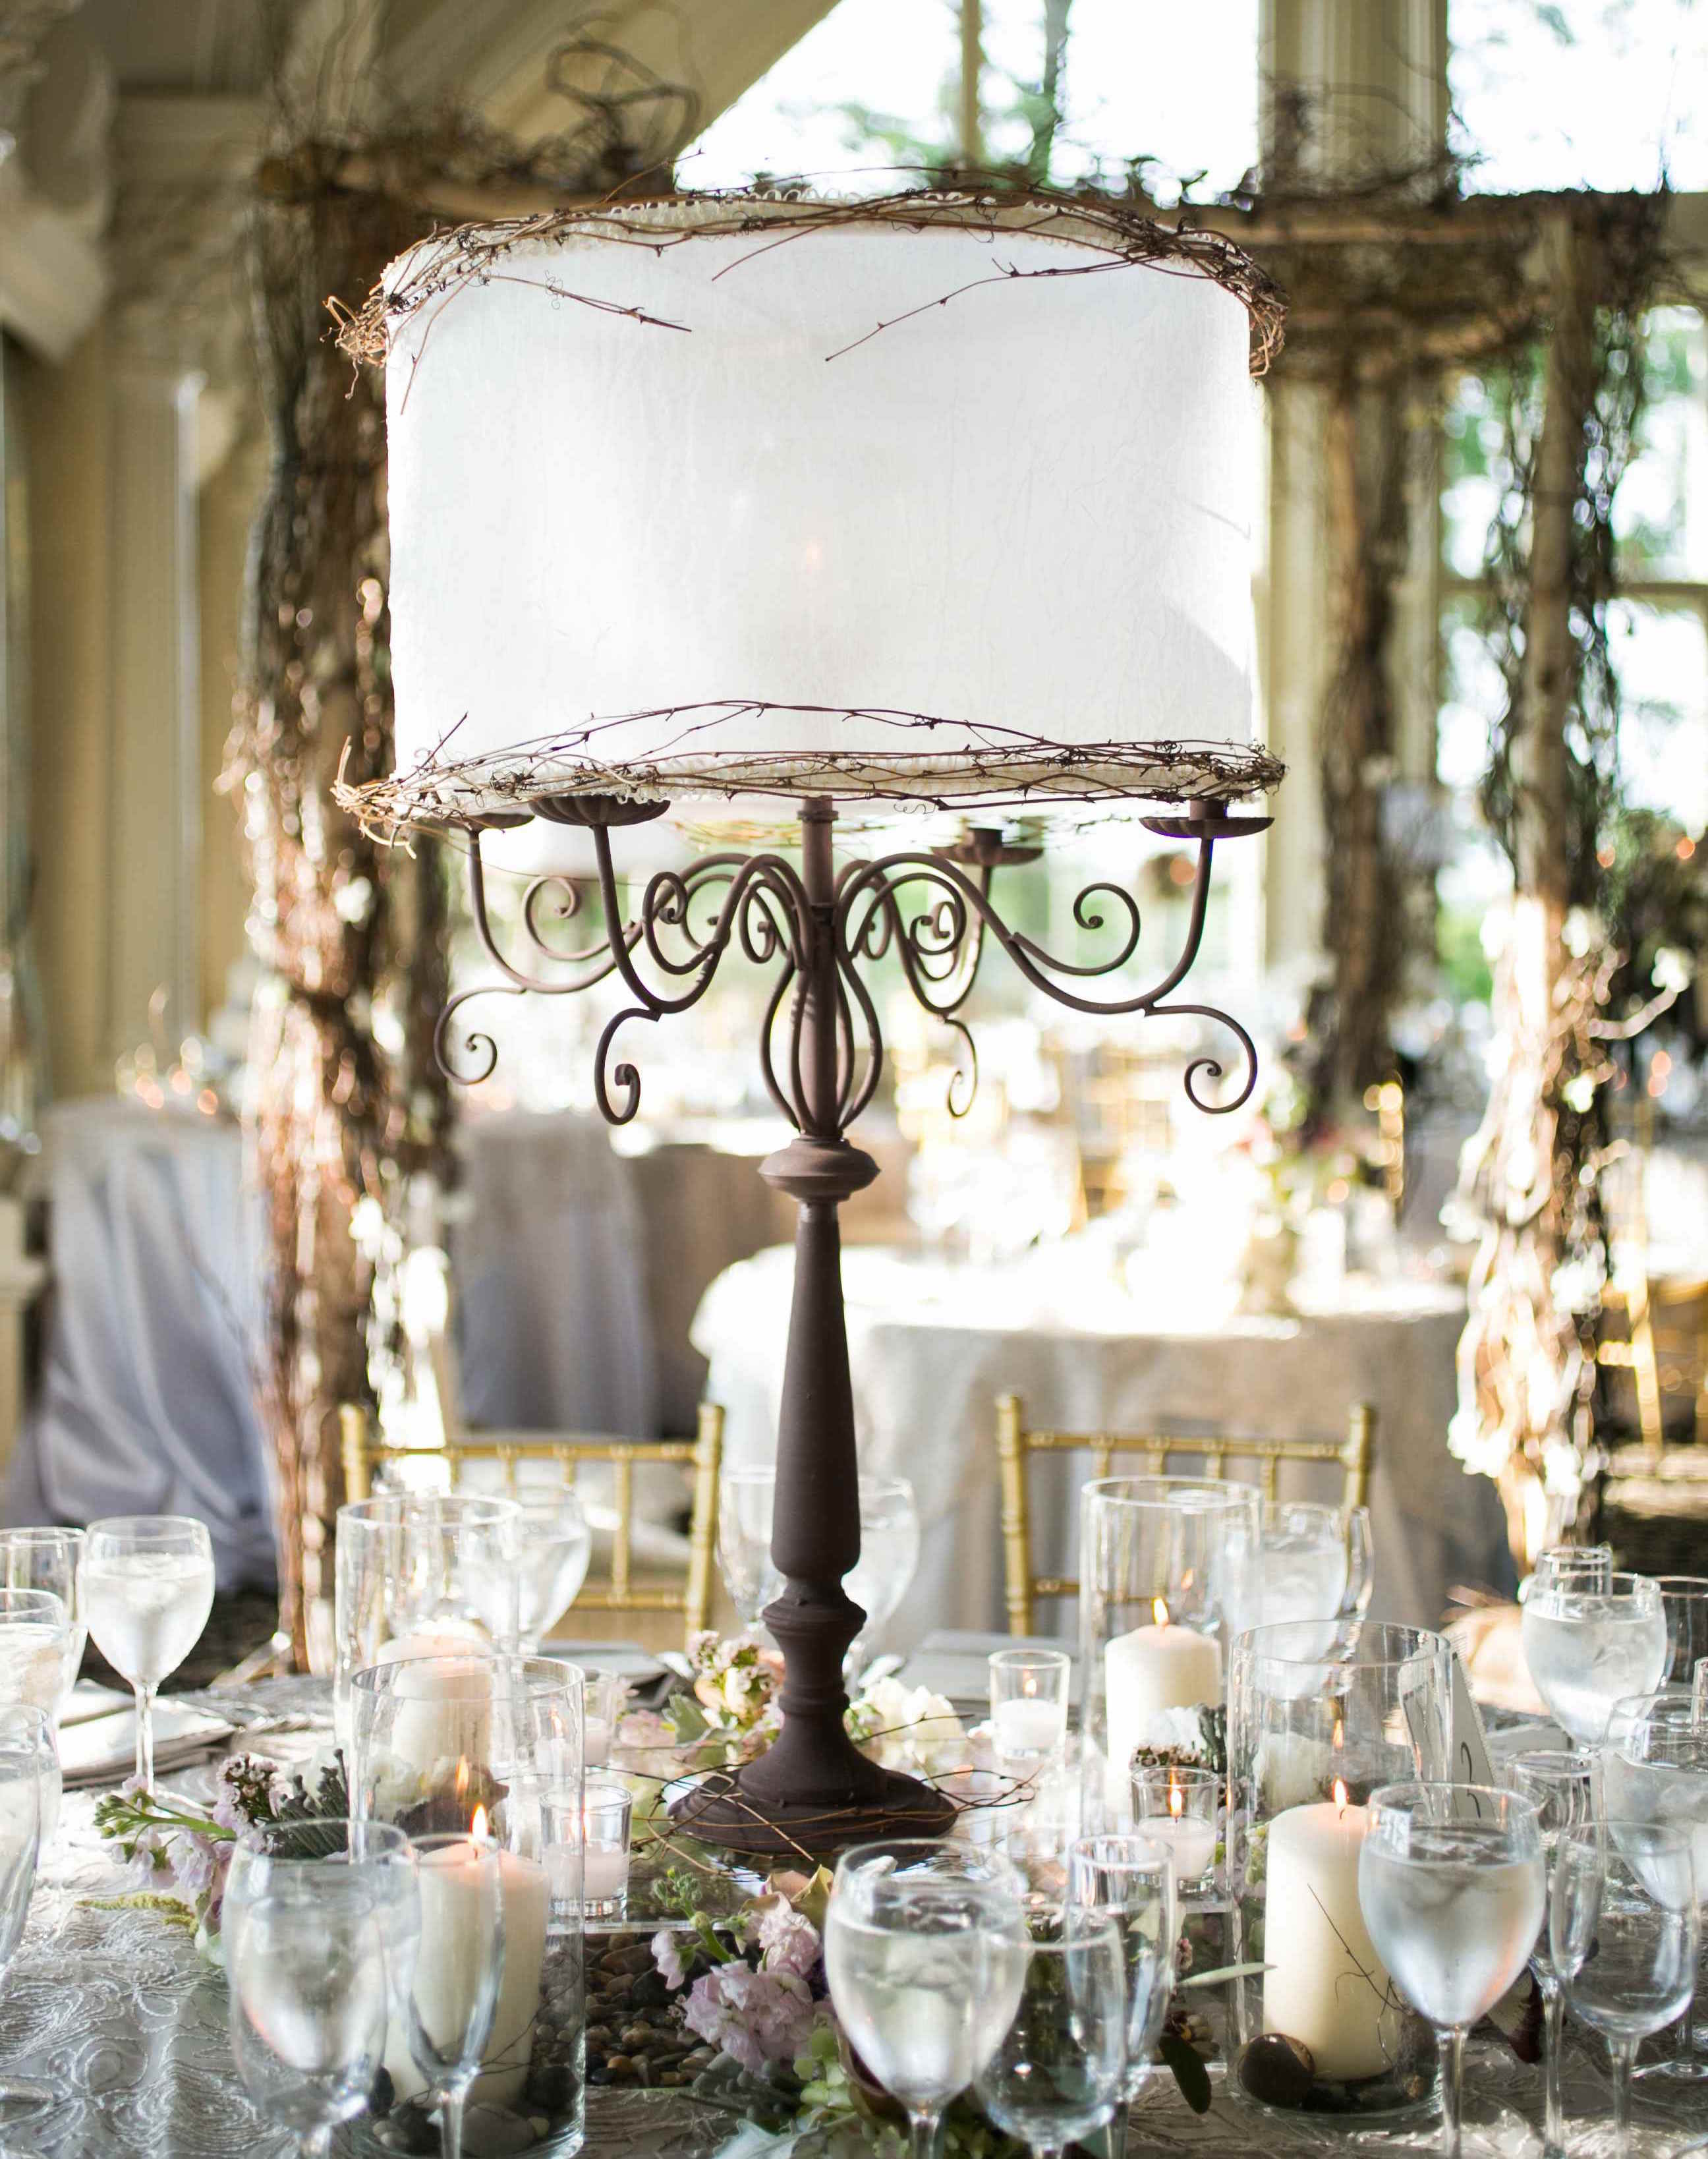 Amazing Rustic Elegant Wedding Centerpieces – Wedding